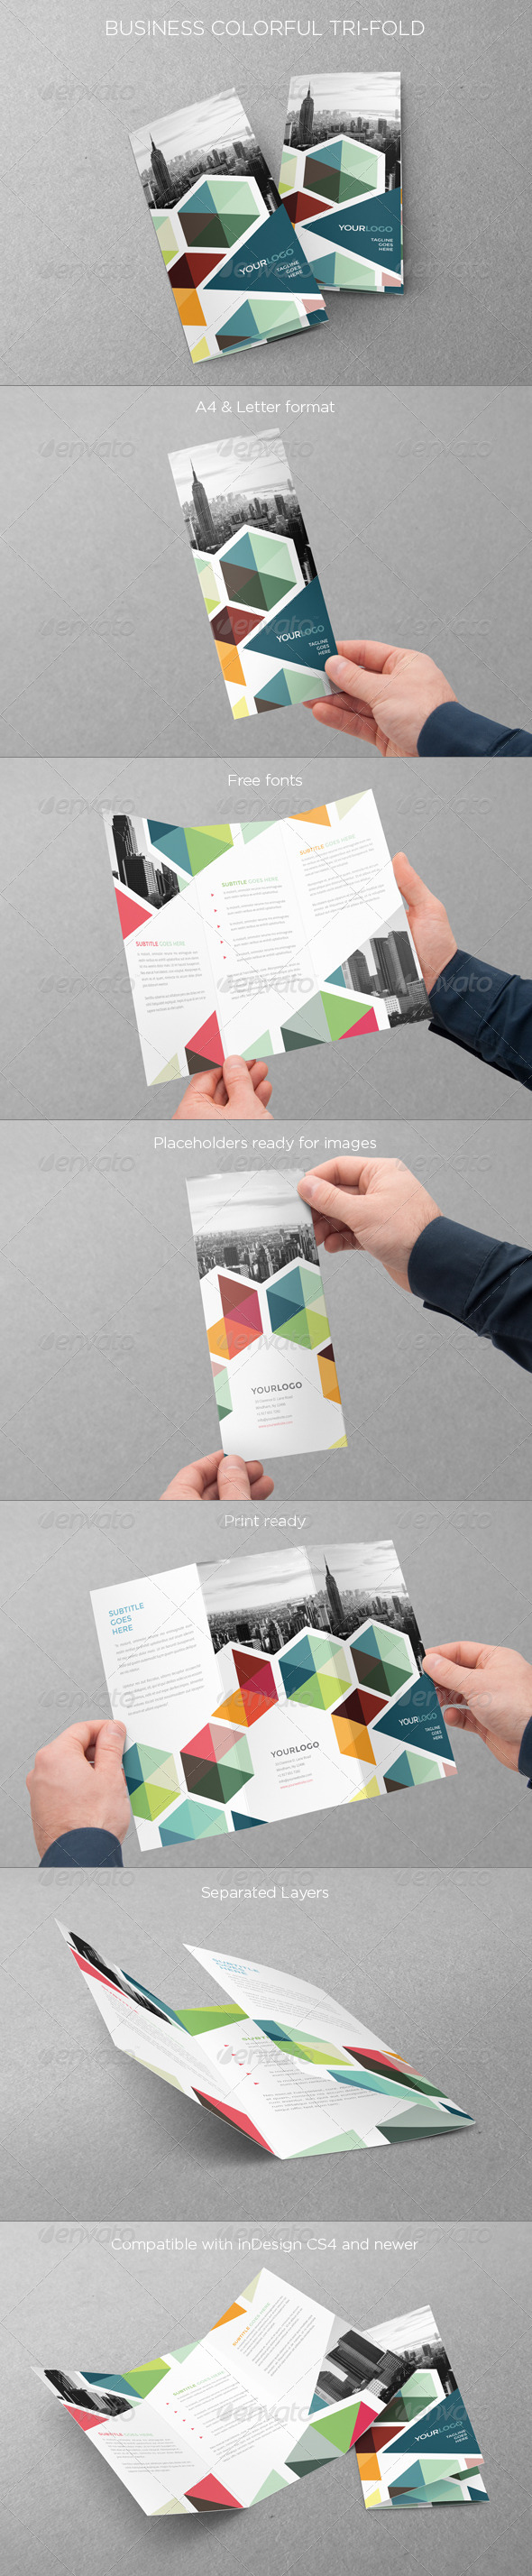 GraphicRiver Business Colorful Trifold 7875655